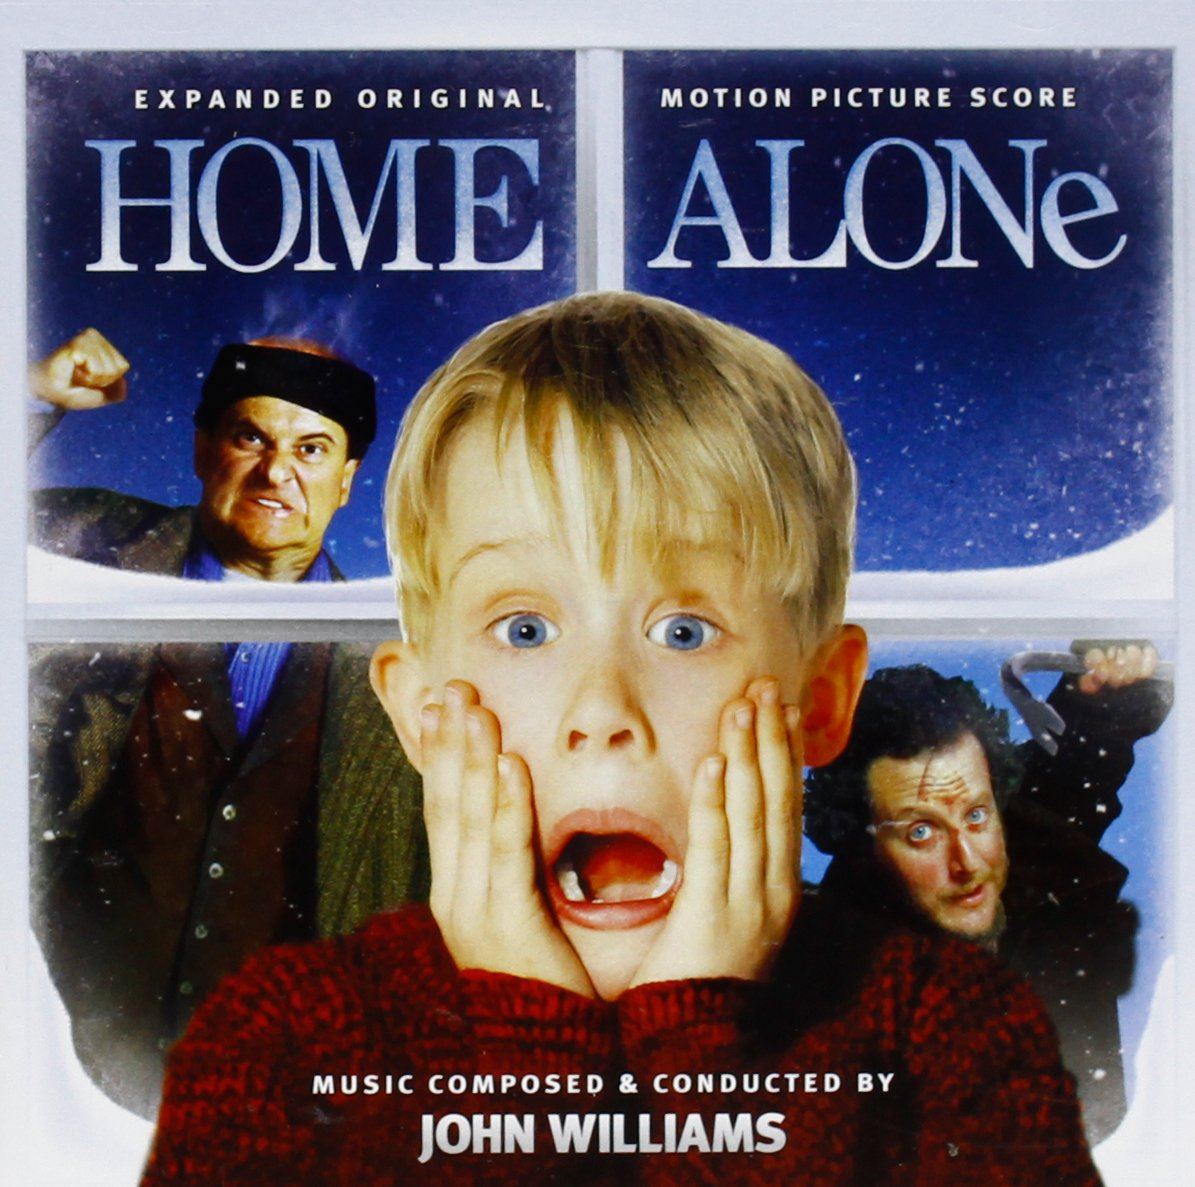 bande originale soundtrack ost score maman raté avion home alone disney fox